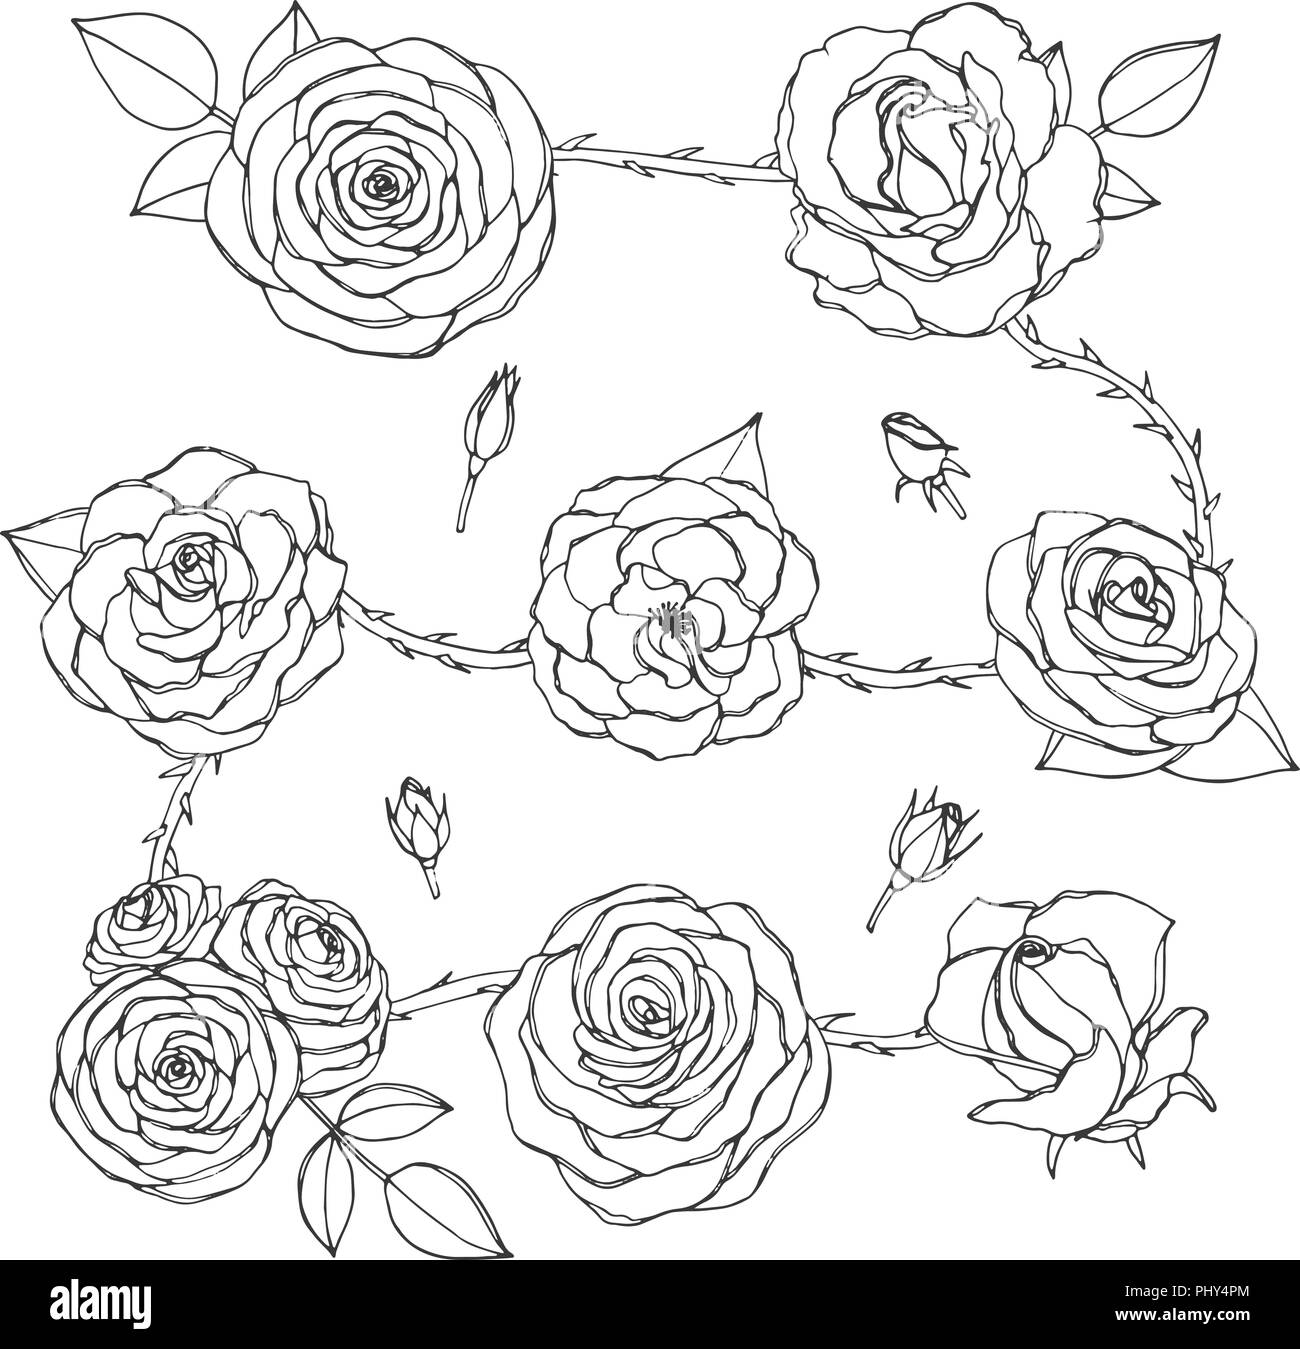 Vector set of rose flowers with buds, leaves and thorny stems line art isolated on the white background. Hand drawn floral collection of blossoms in s - Stock Image